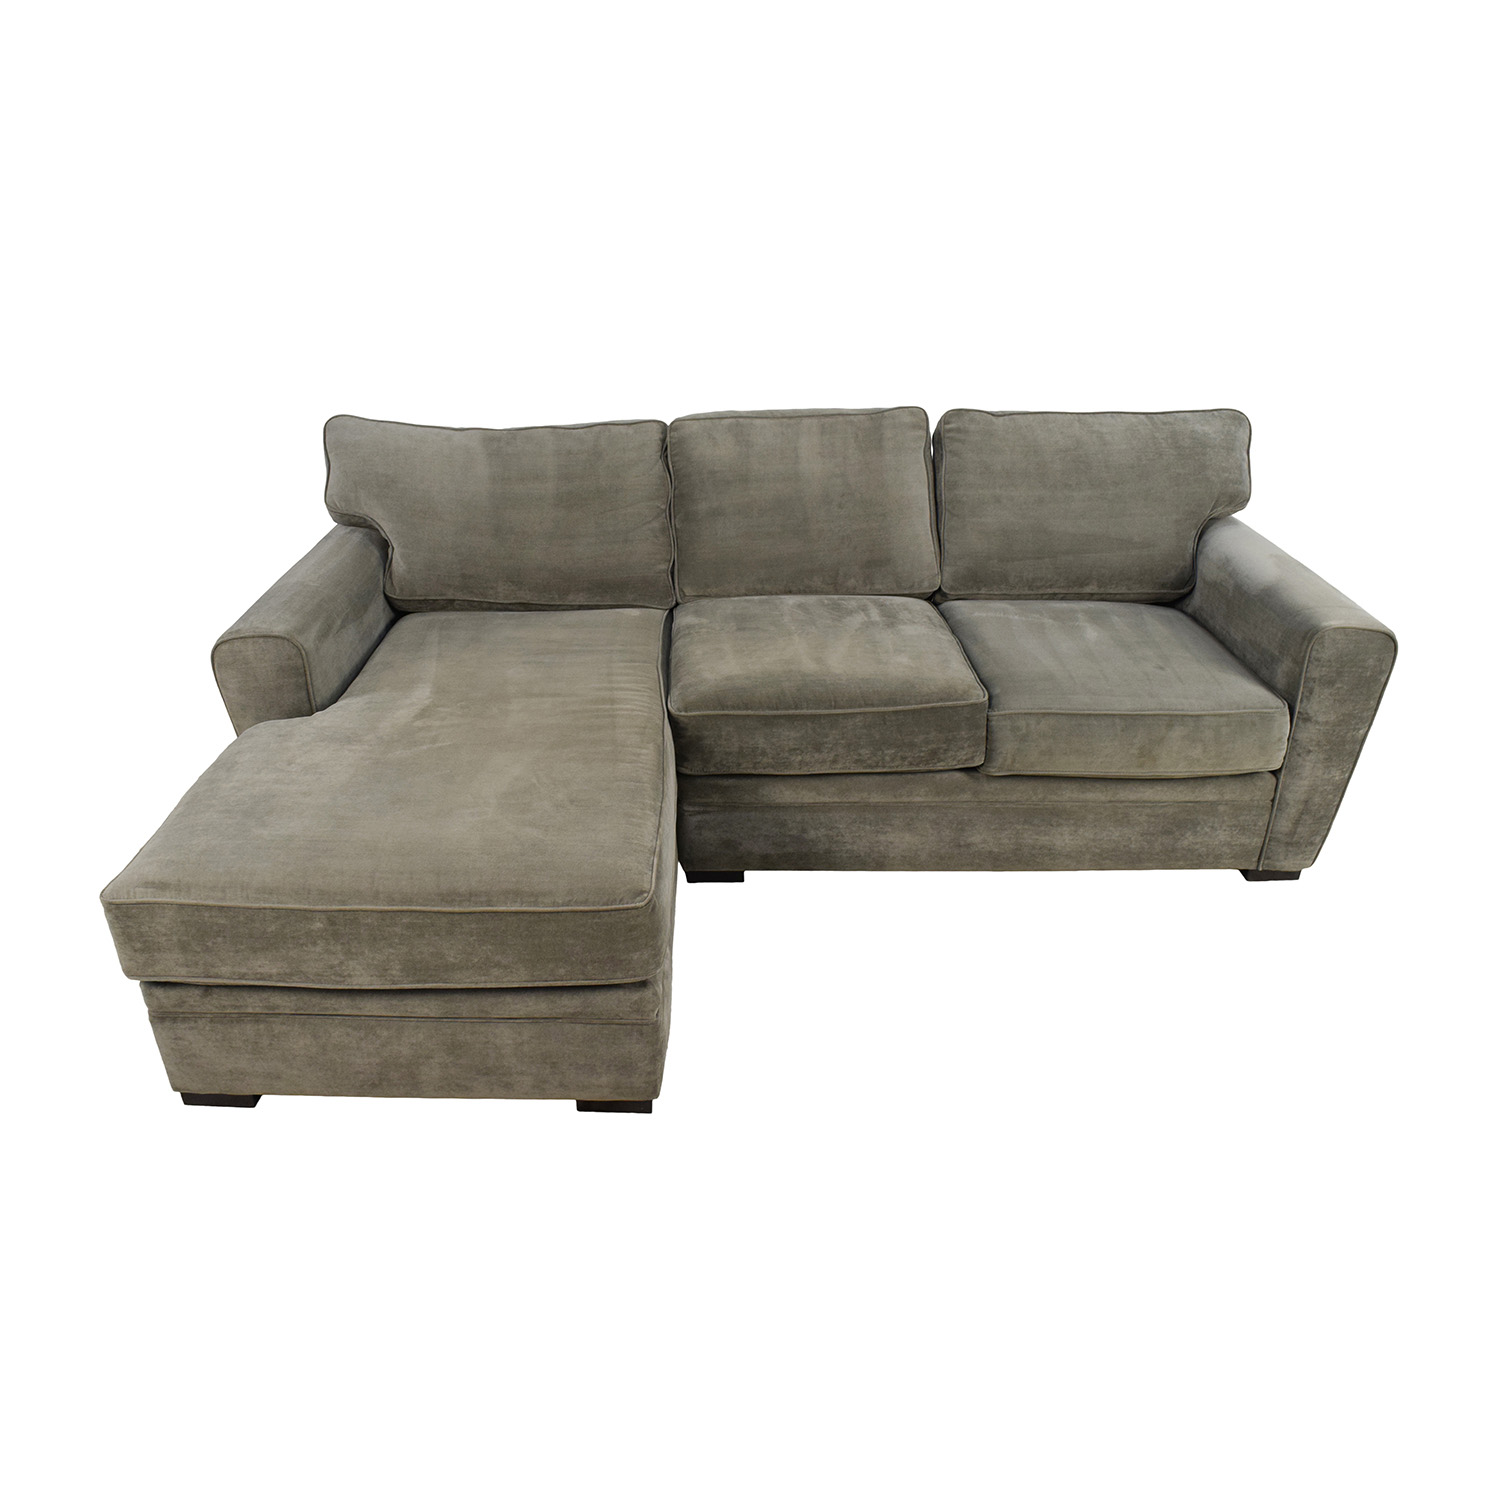 Raymour And Flanigan Grey Sectional Sofa Baci Living Room